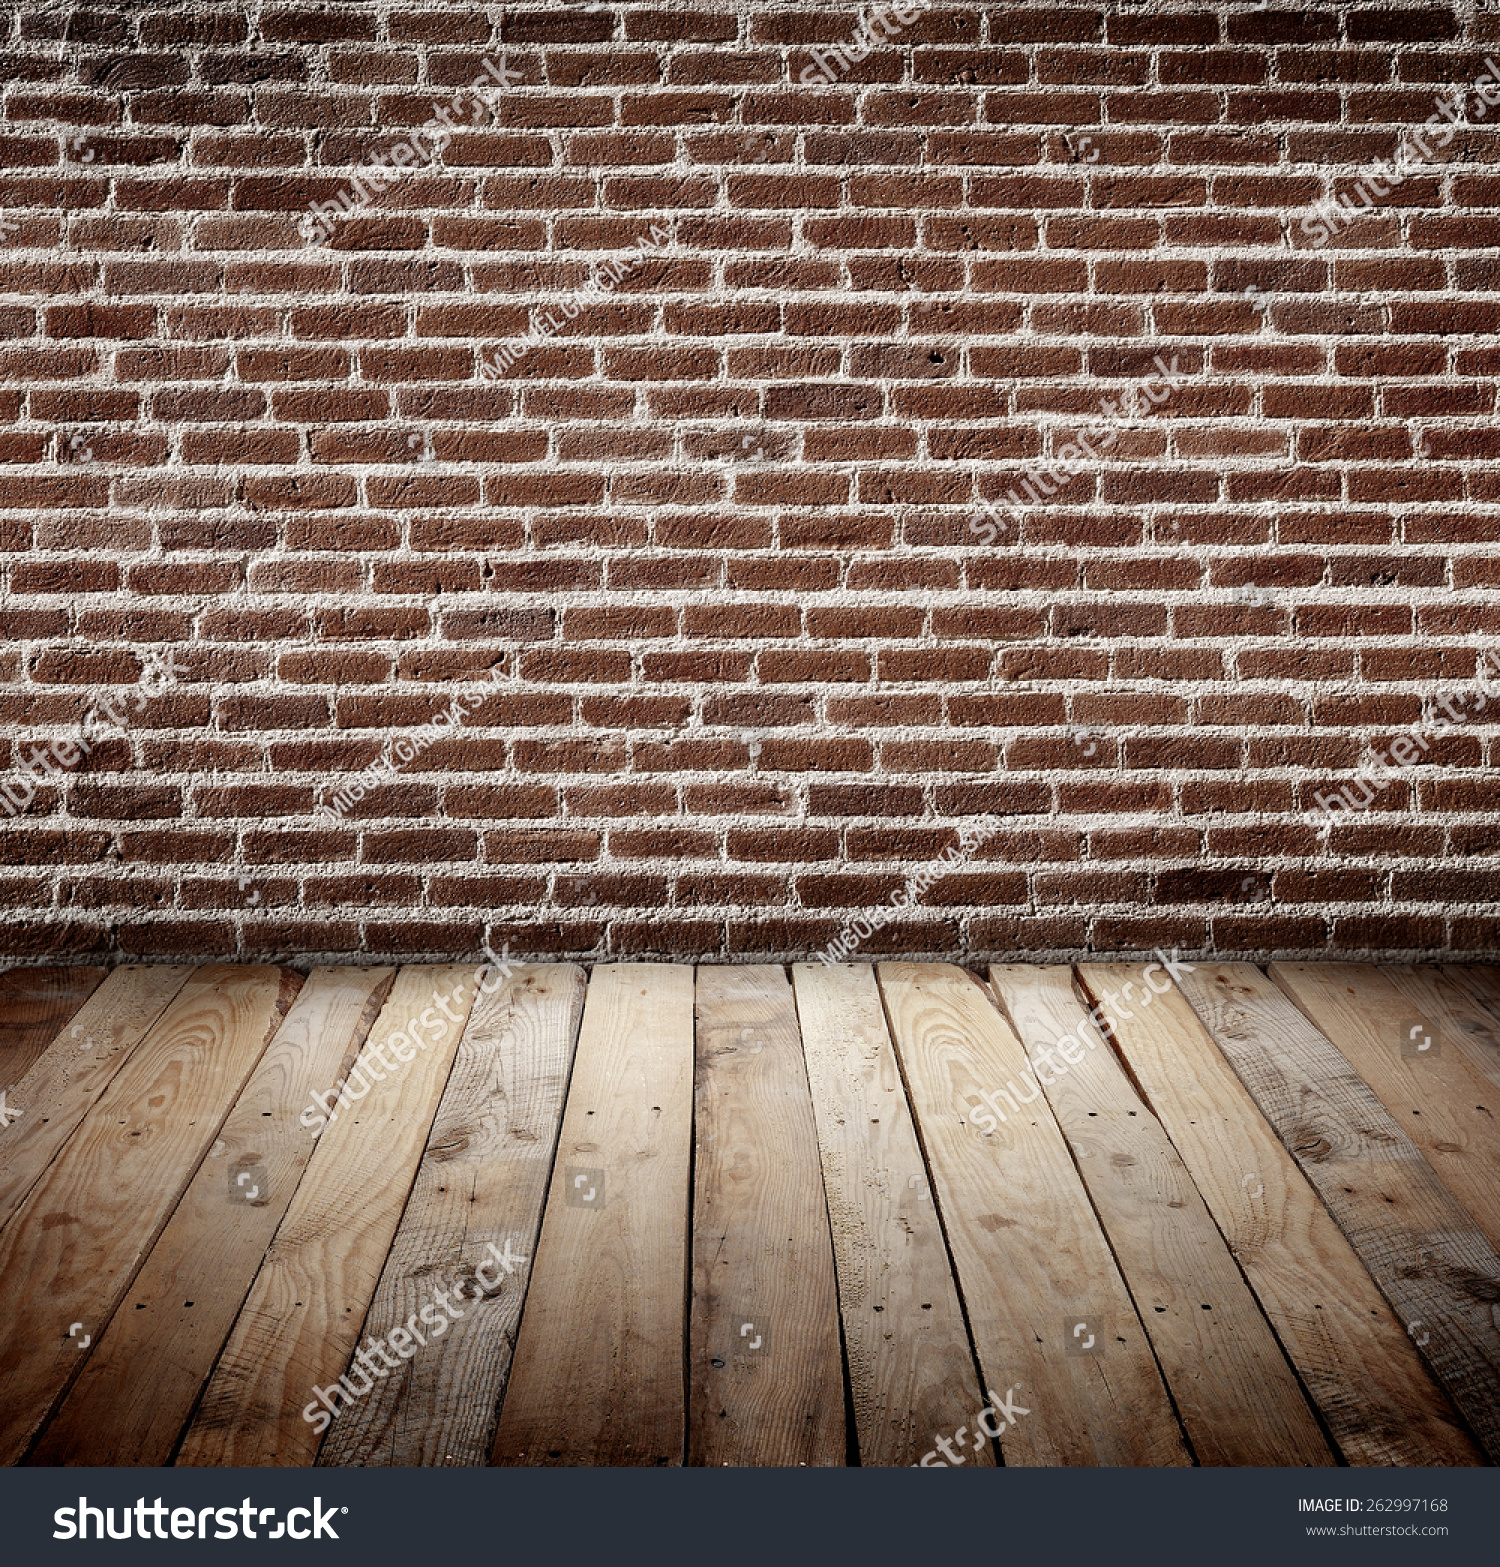 Brick Wall Wooden Slats Floor Background Stock Royalty Free